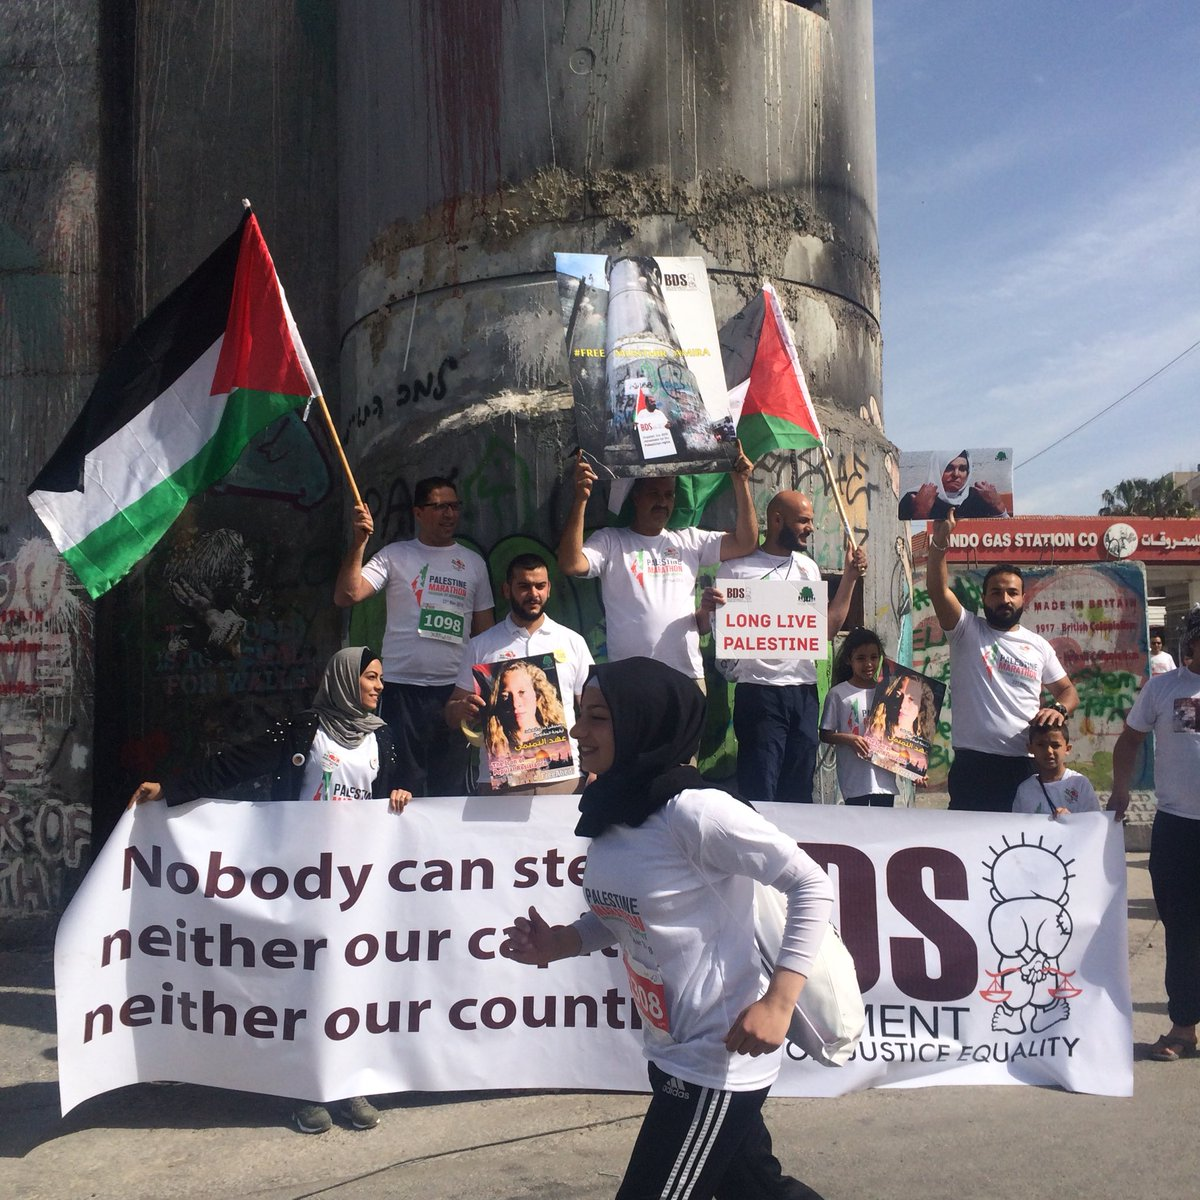 Activists raise awareness about BDS and...